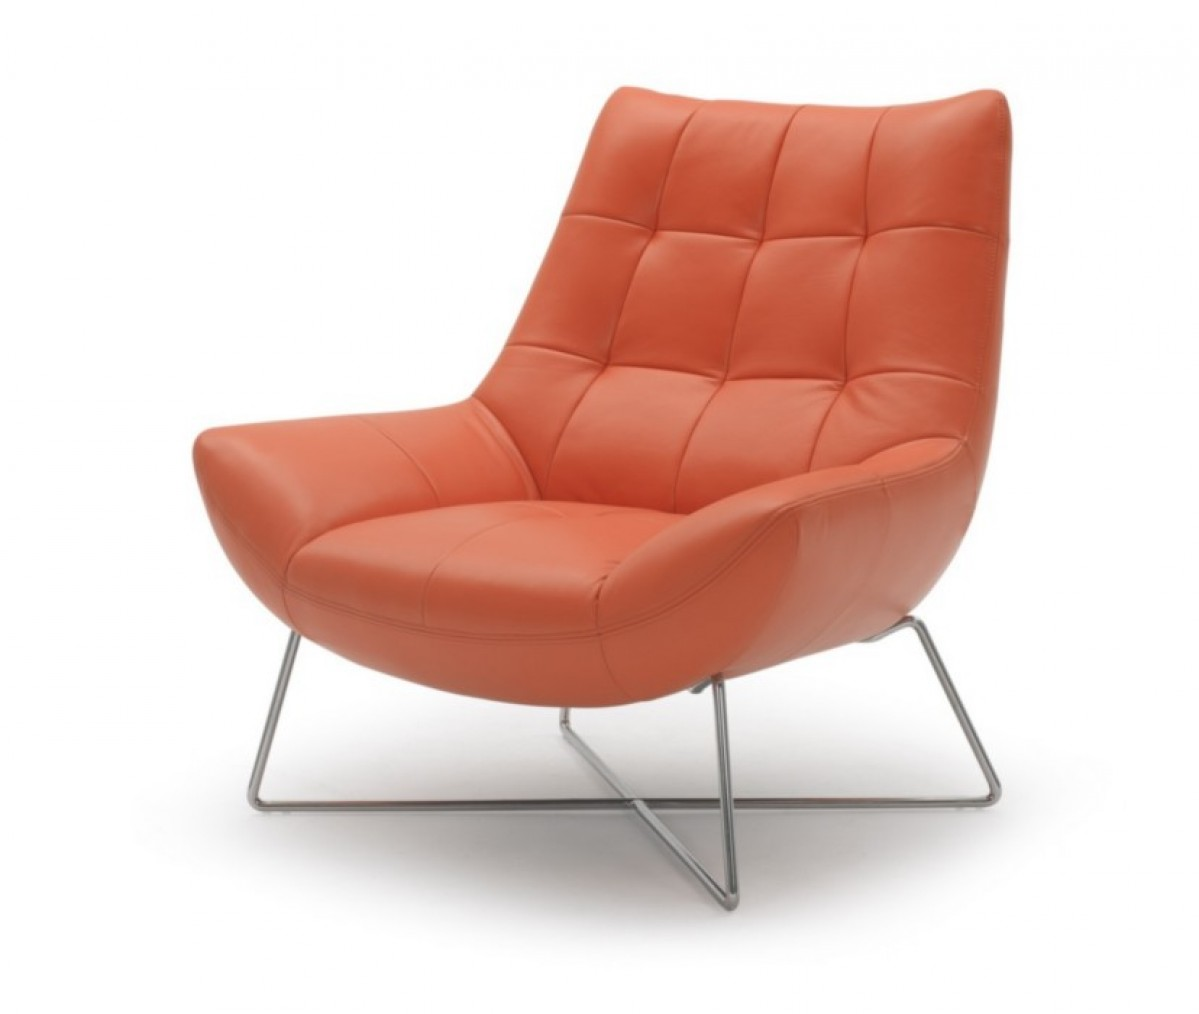 Modern orange leather and stainless steel lounge chair for Chaise longue orange